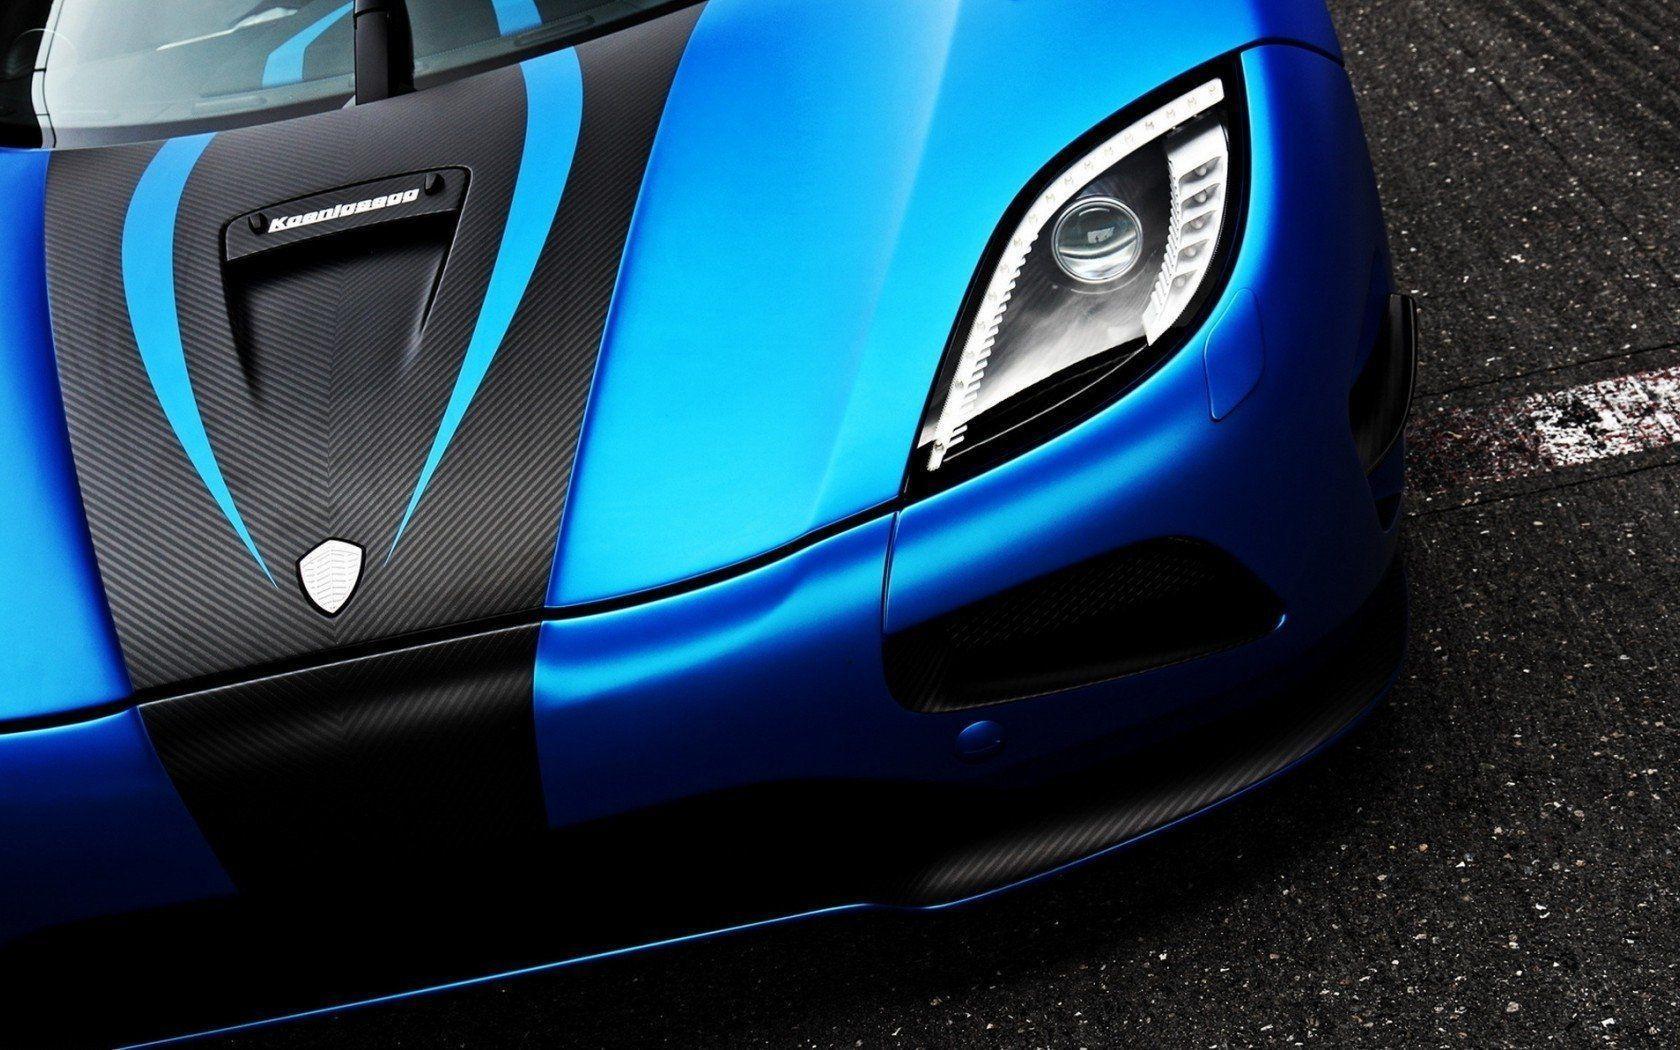 46 Koenigsegg HD Wallpapers